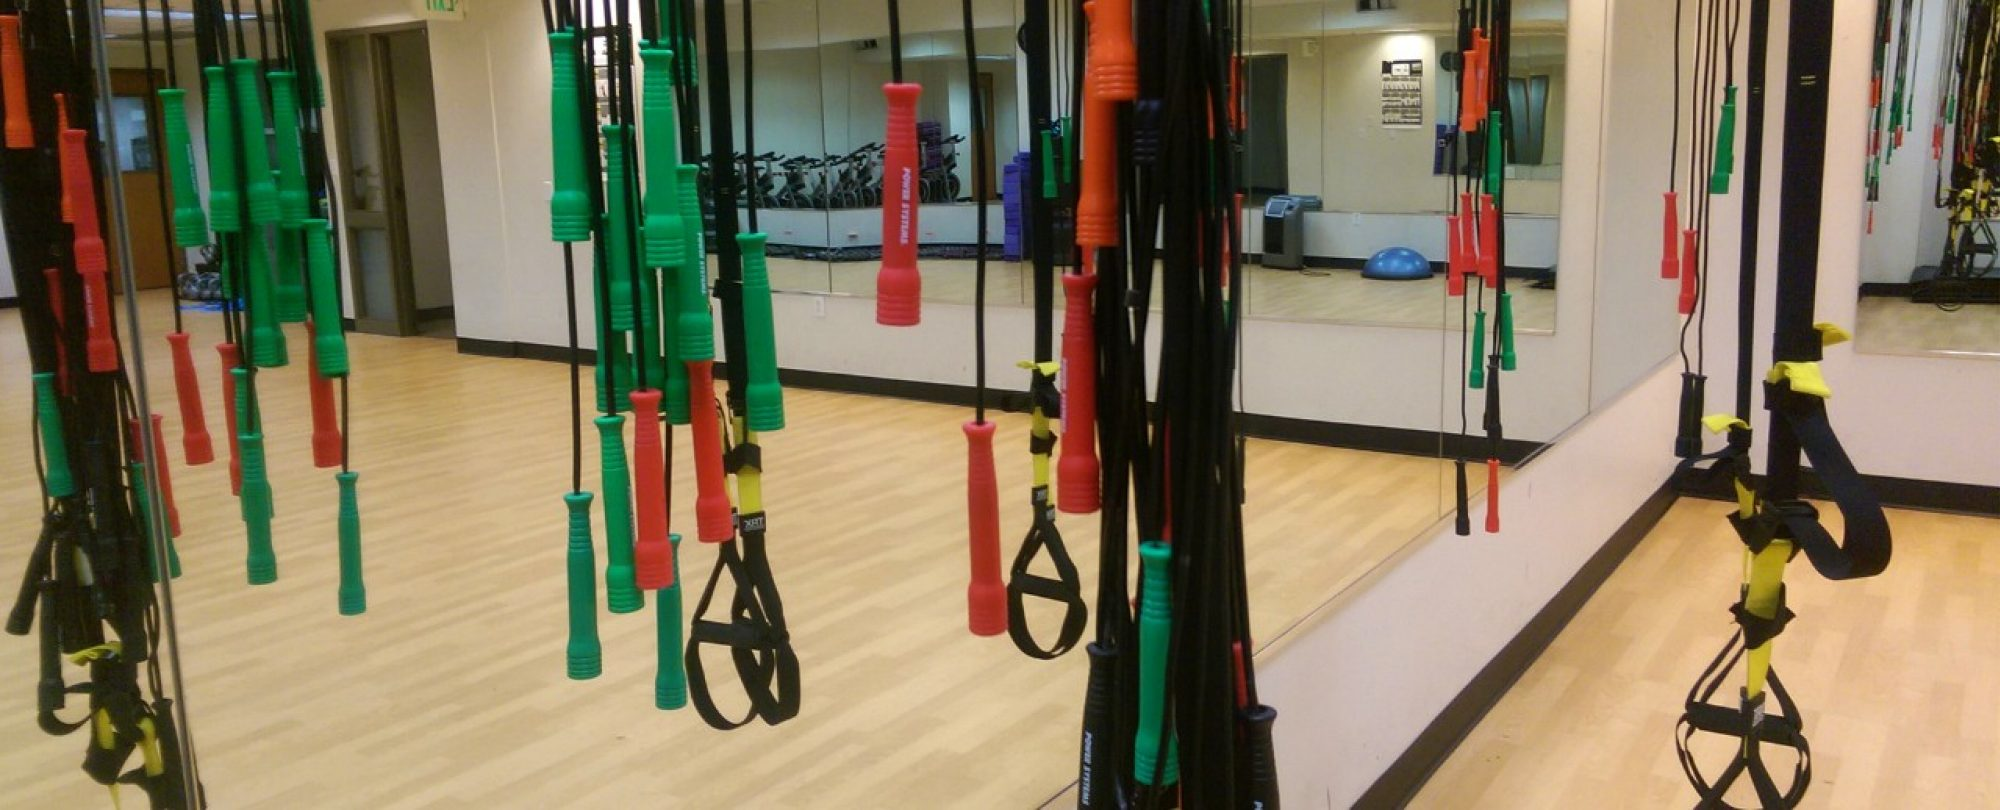 photo of jump ropes hanging in gym